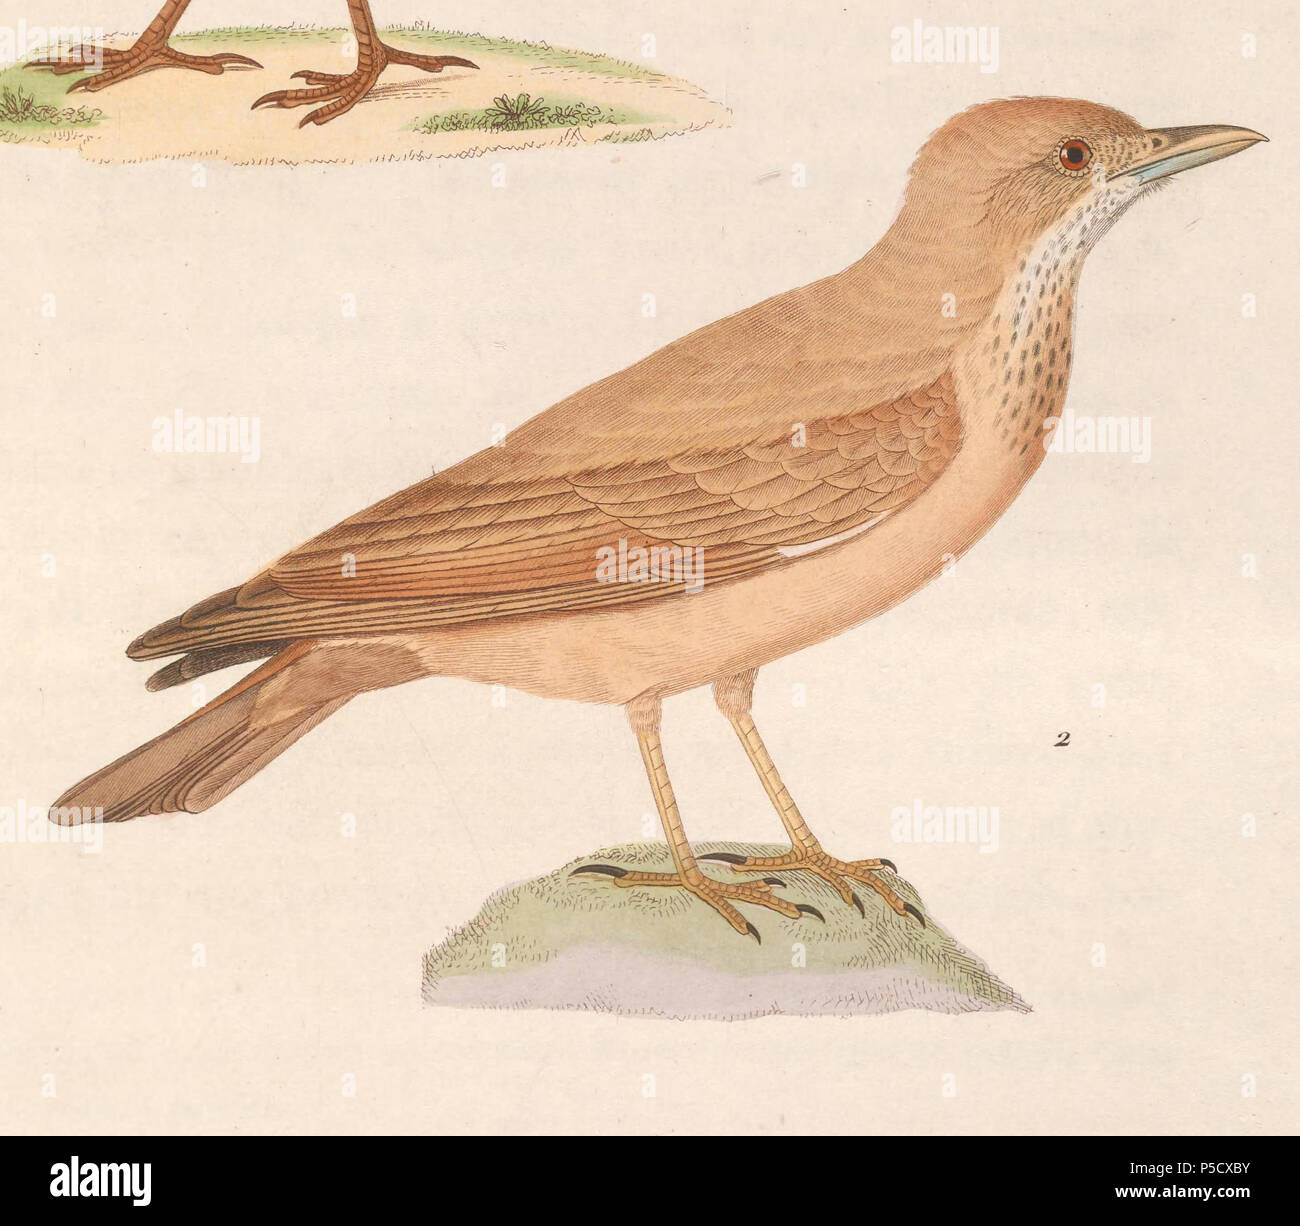 N/A.  English: « Alauda isabellina » = Ammomanes deserti isabellinus (Subspecies of Desert Lark) - male Français: « Alauda isabellina » = Ammomanes deserti isabellinus (Sous-espèce de Ammomane isabelline) - mâle . 1838.   Nicolas Huet  (1770–1830)    Alternative names Nicolas, II Huet; Nicolas Huet The Younger; Nicholas Huet II; Nicolas The Younger Huet  Description French painter, illustrator and engraver  Date of birth/death 1770 26 December 1830  Location of birth Paris  Authority control  : Q3340421 VIAF:95590486 ISNI:0000 0000 7064 7628 ULAN:500117124 GND:138988412      Jean Gabriel Prêtr - Stock Image